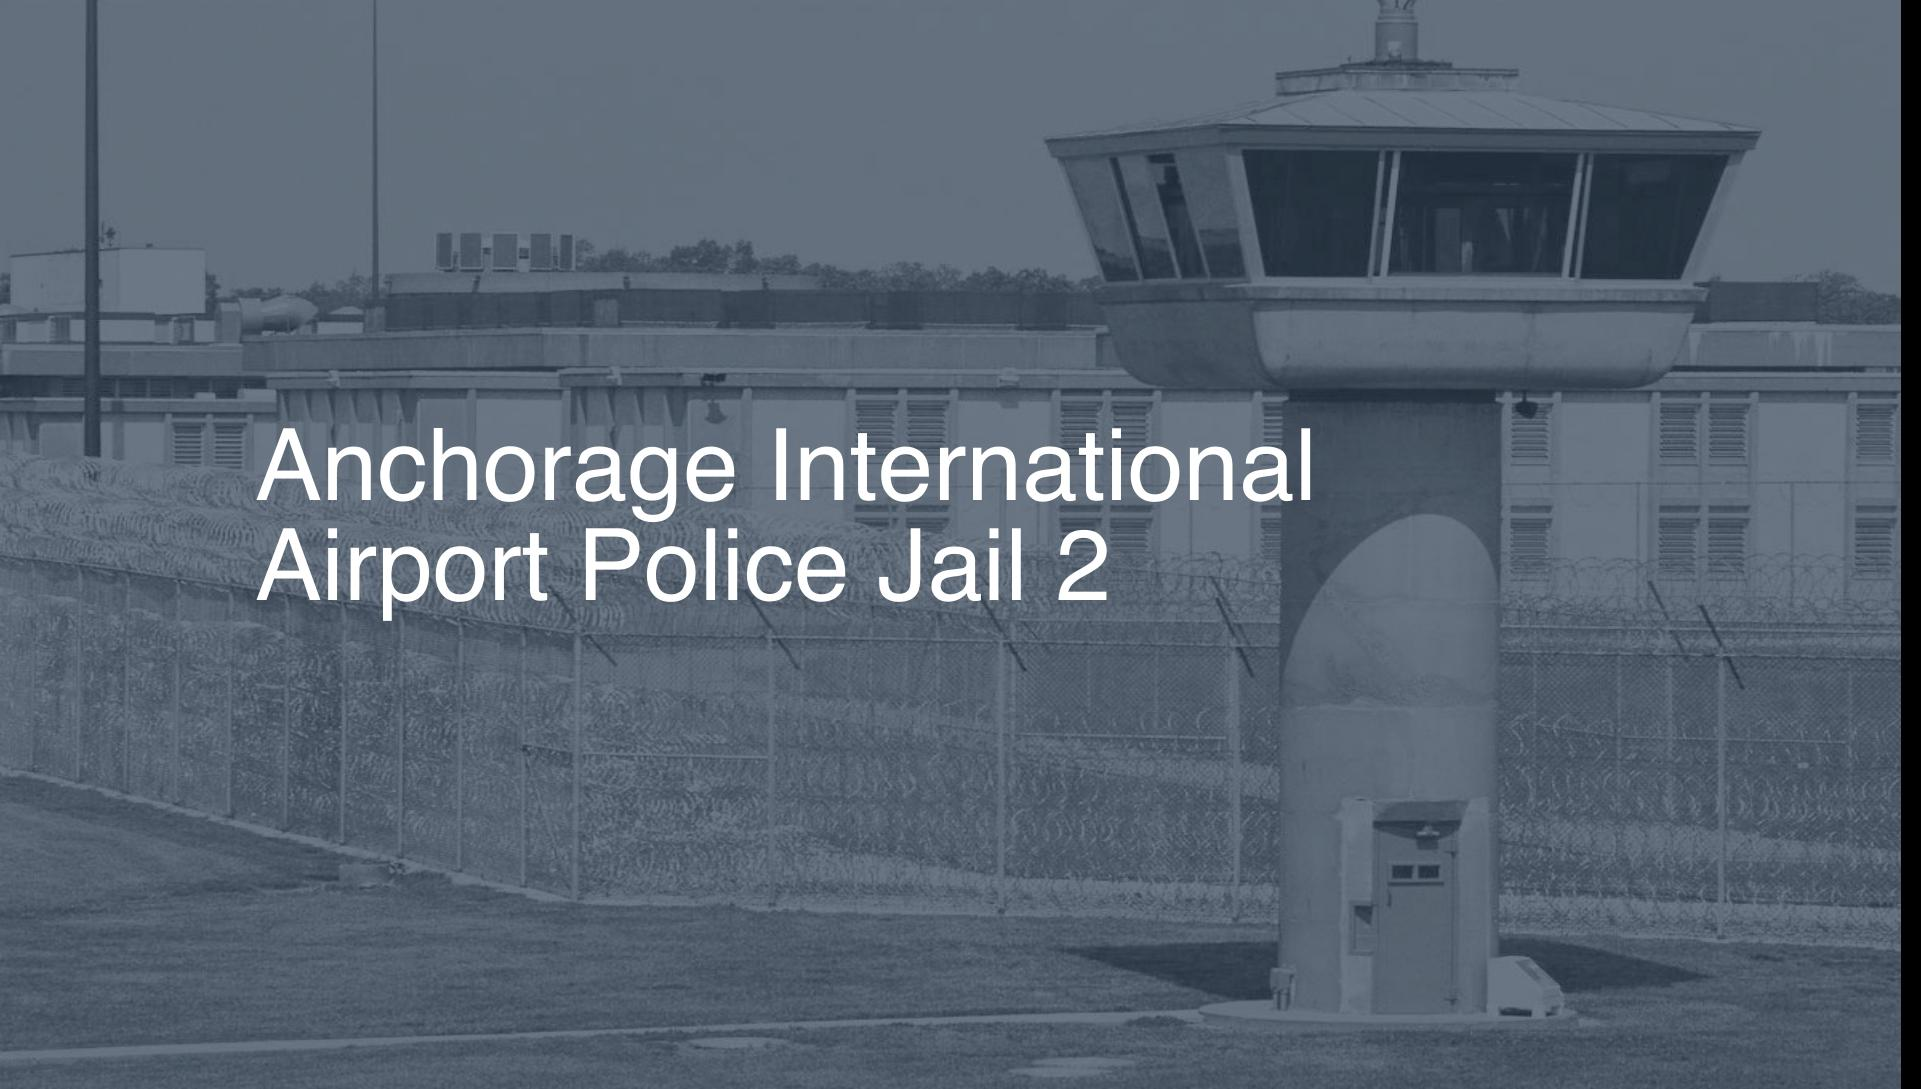 Anchorage International Airport Police Jail correctional facility picture